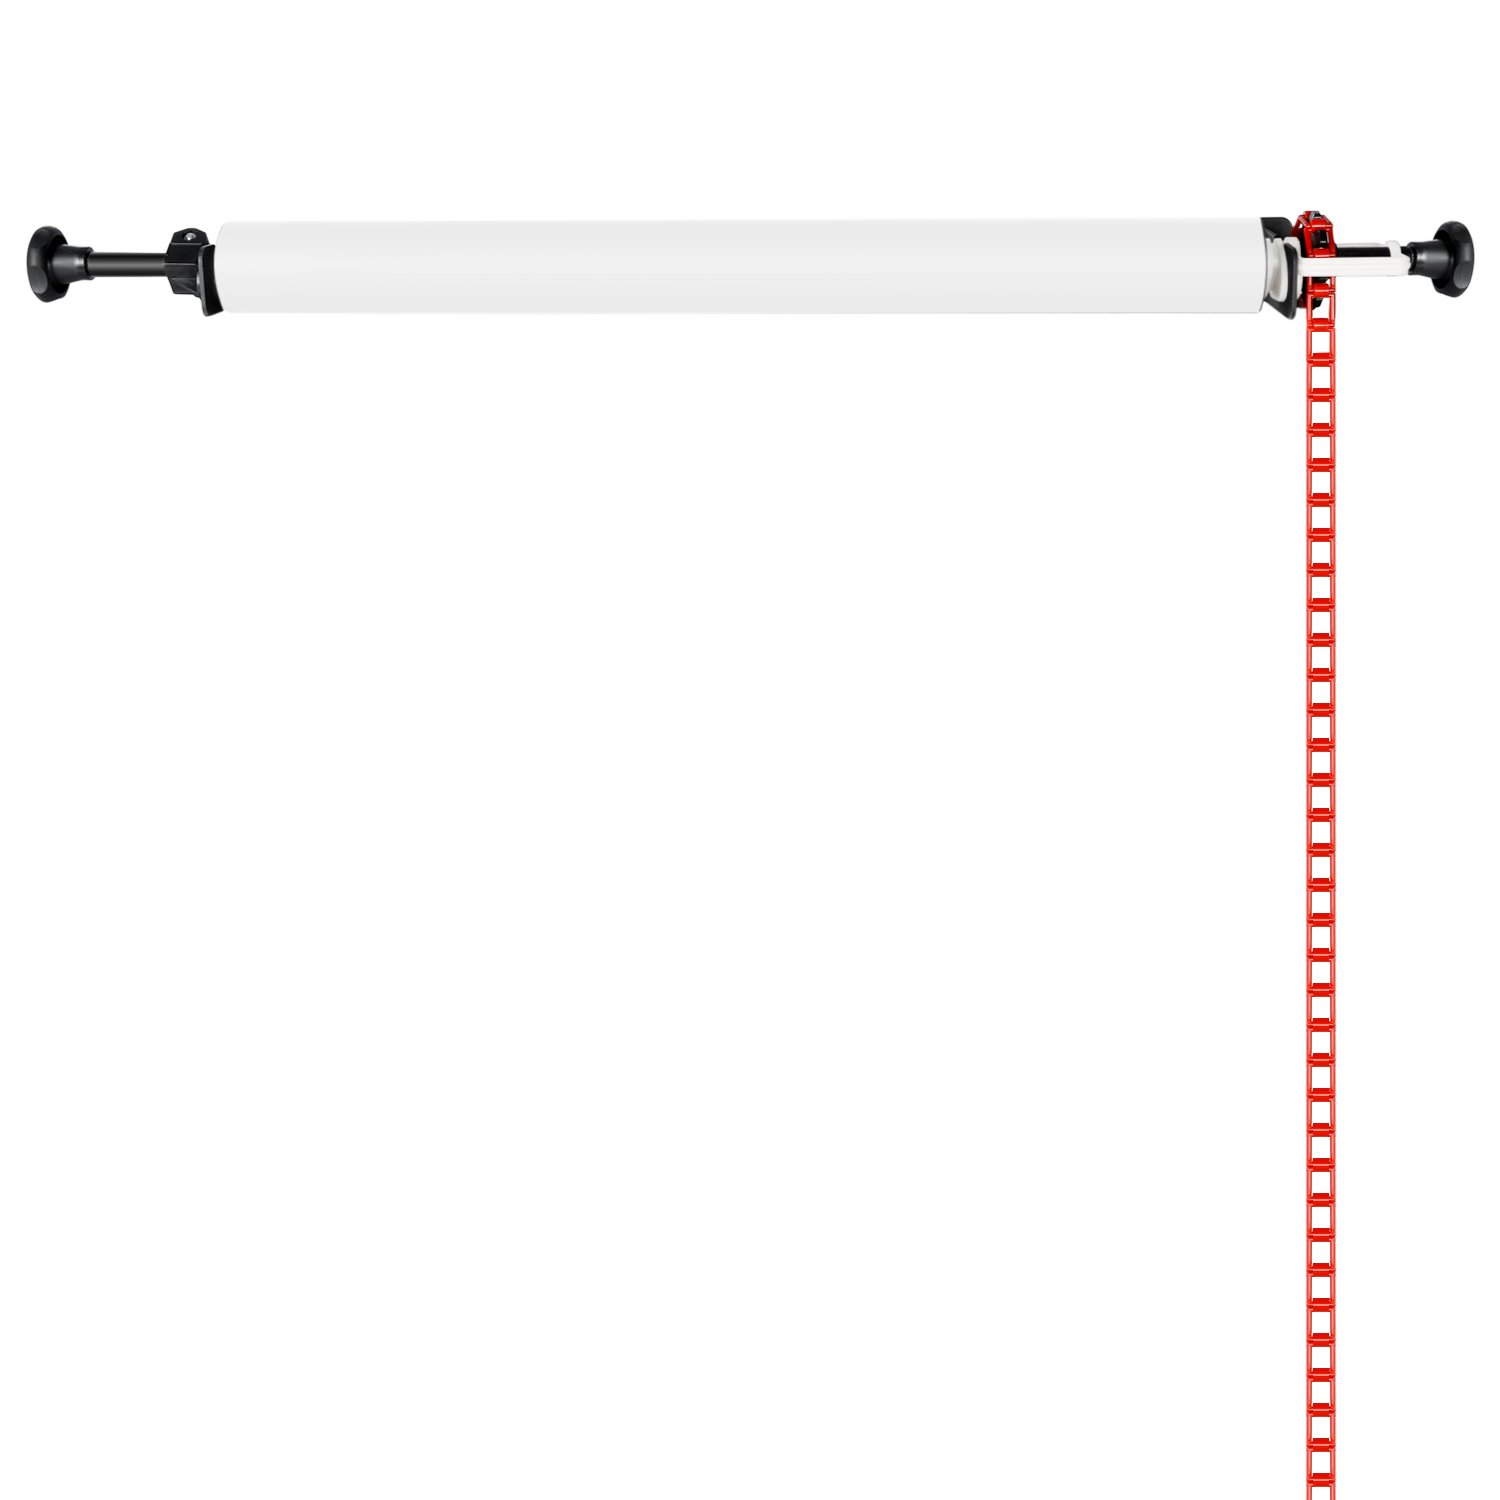 Neewer Photography Single Roller Wall Mounting Manual Background Support System, Including Two(2) Single Hooks, Two(2) Expand Bars, One(1) Chain, Eight(8) Clamp Screws